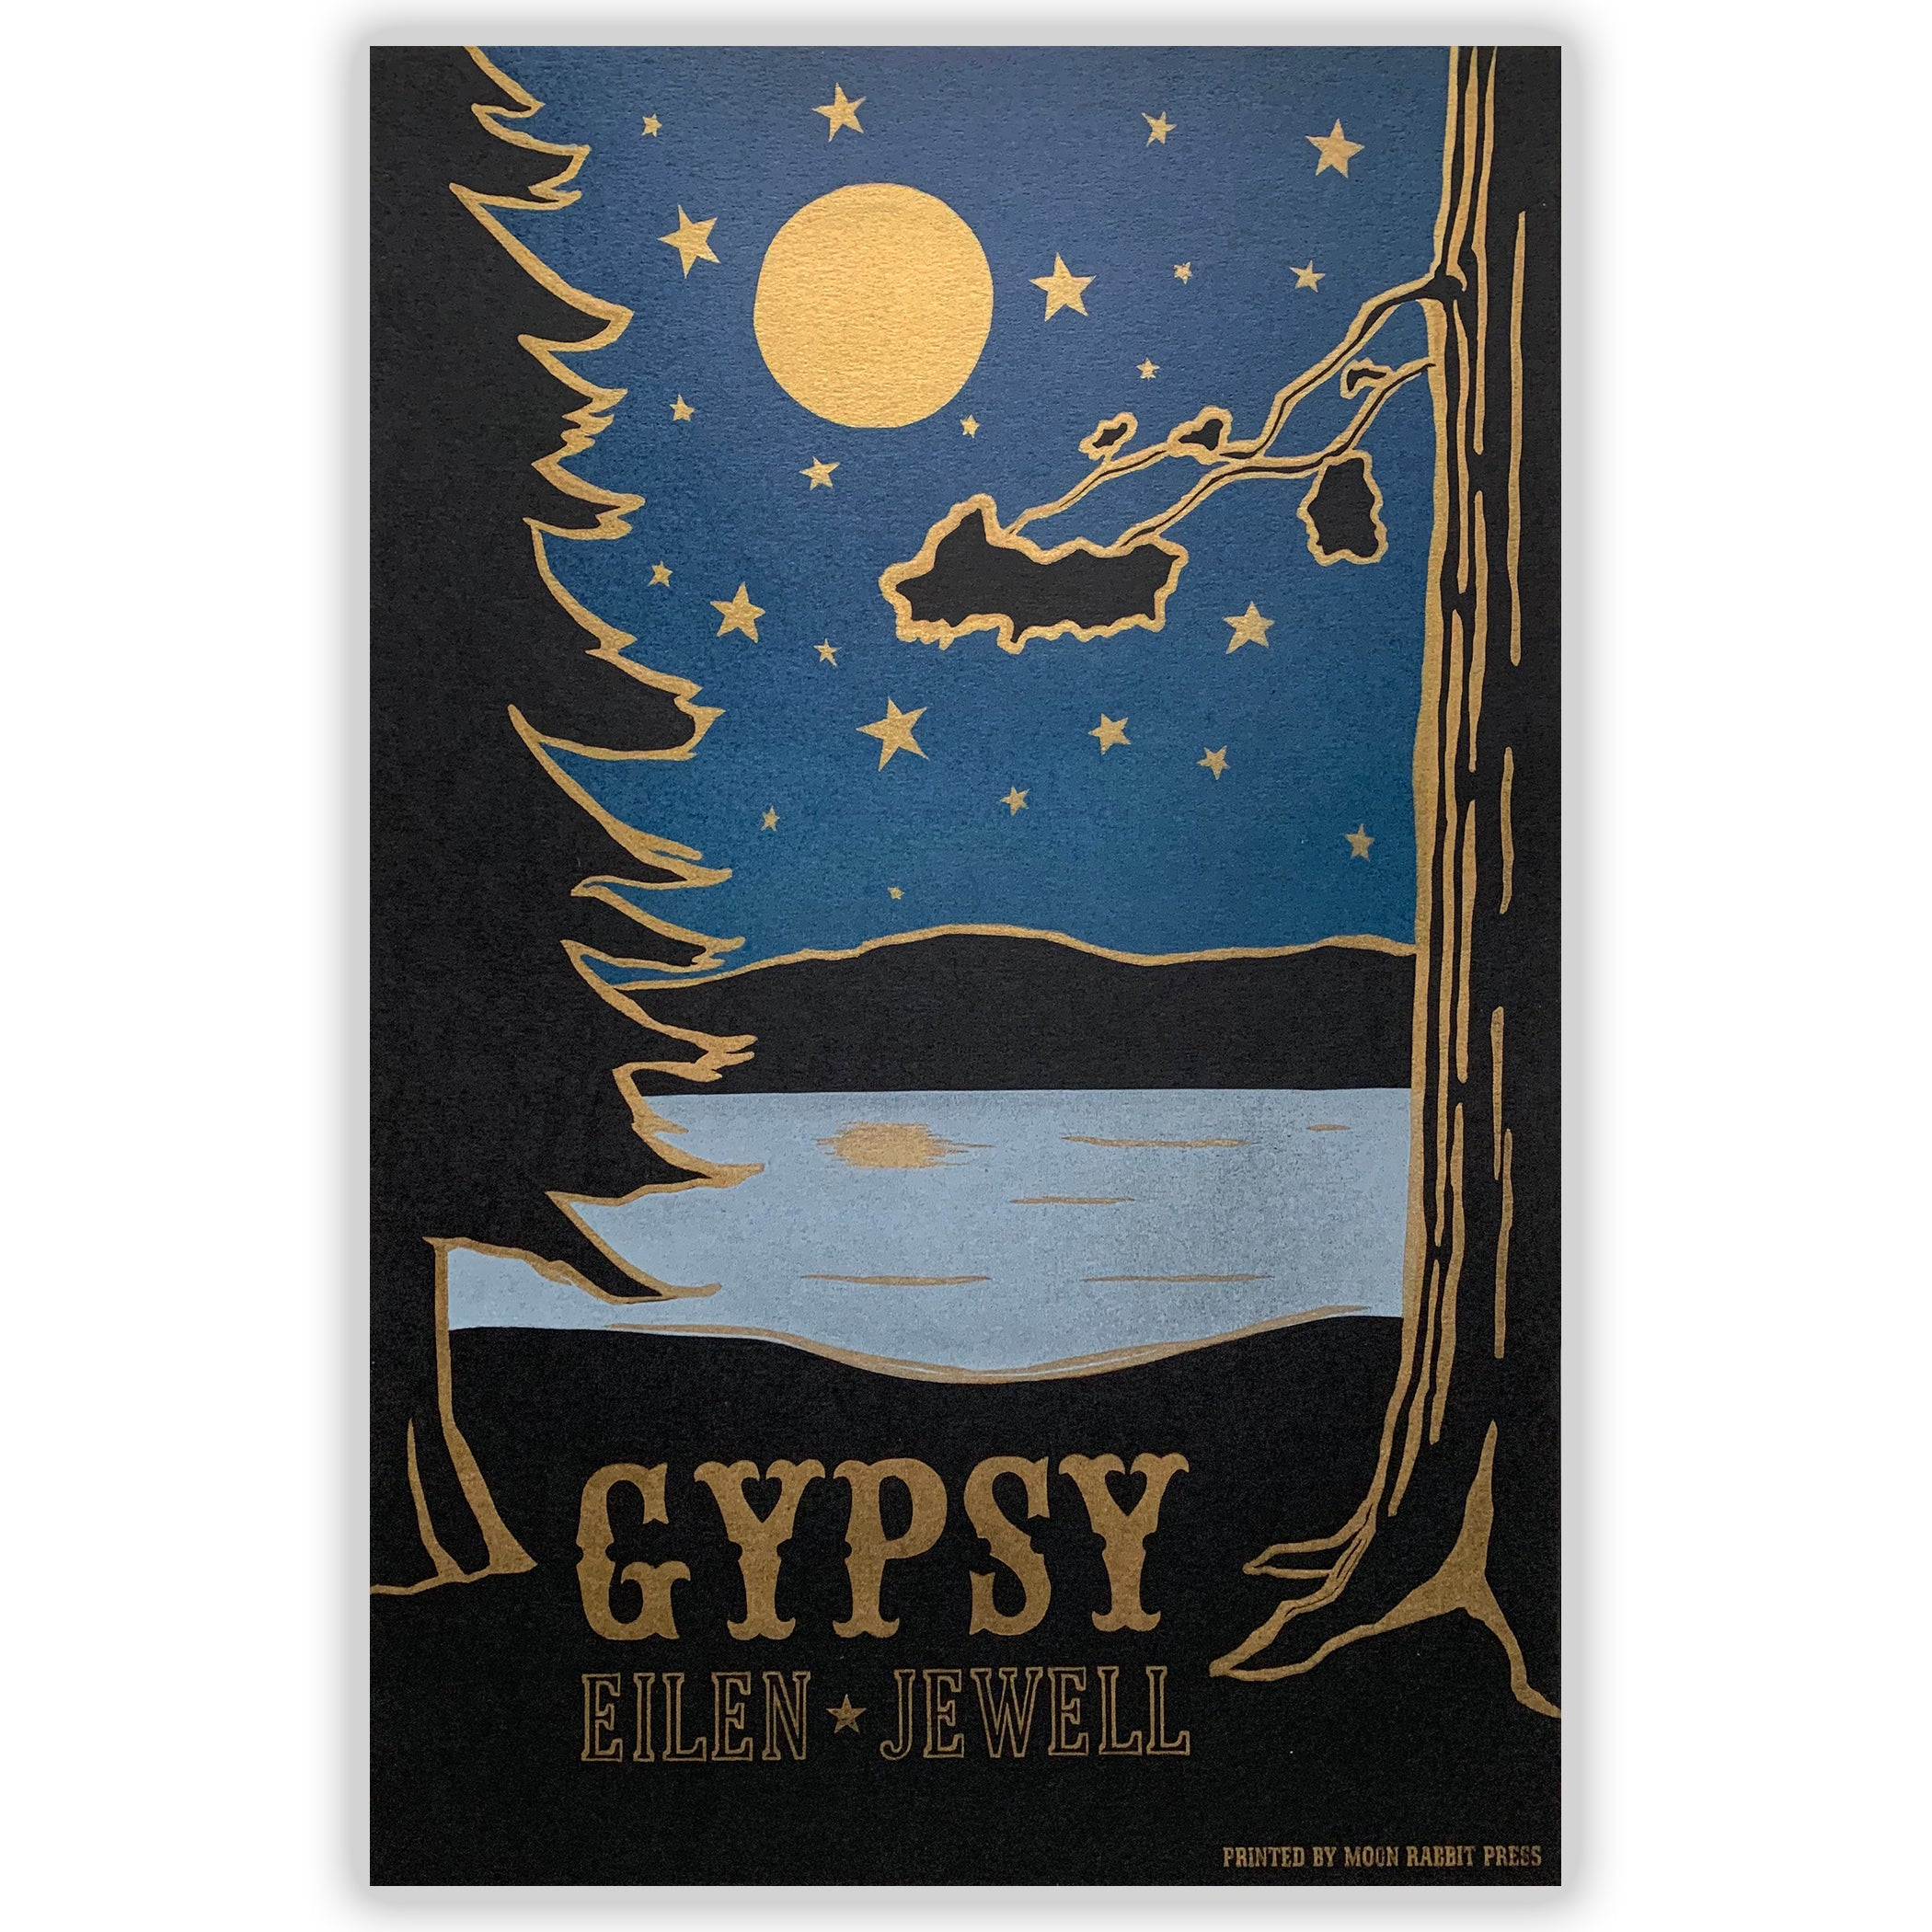 "Eilen Jewell ""Gypsy"" - Moonlit Lake letterpress print"